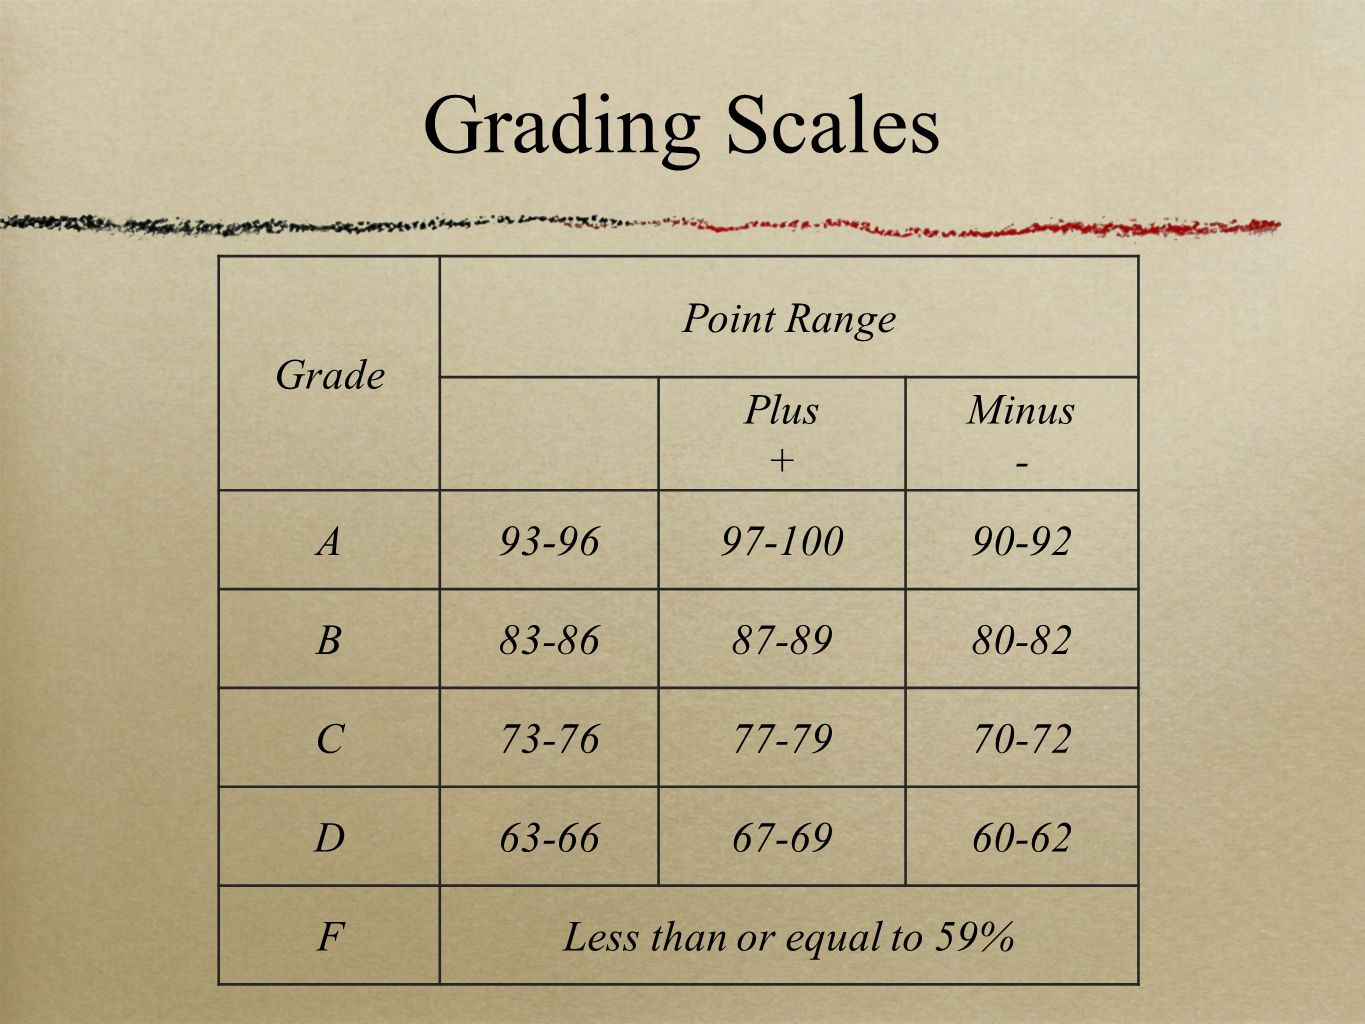 Grading Scales Grade Point Range Plus + Minus - A93-9697-10090-92 B83-8687-8980-82 C73-7677-7970-72 D63-6667-6960-62 FLess than or equal to 59%